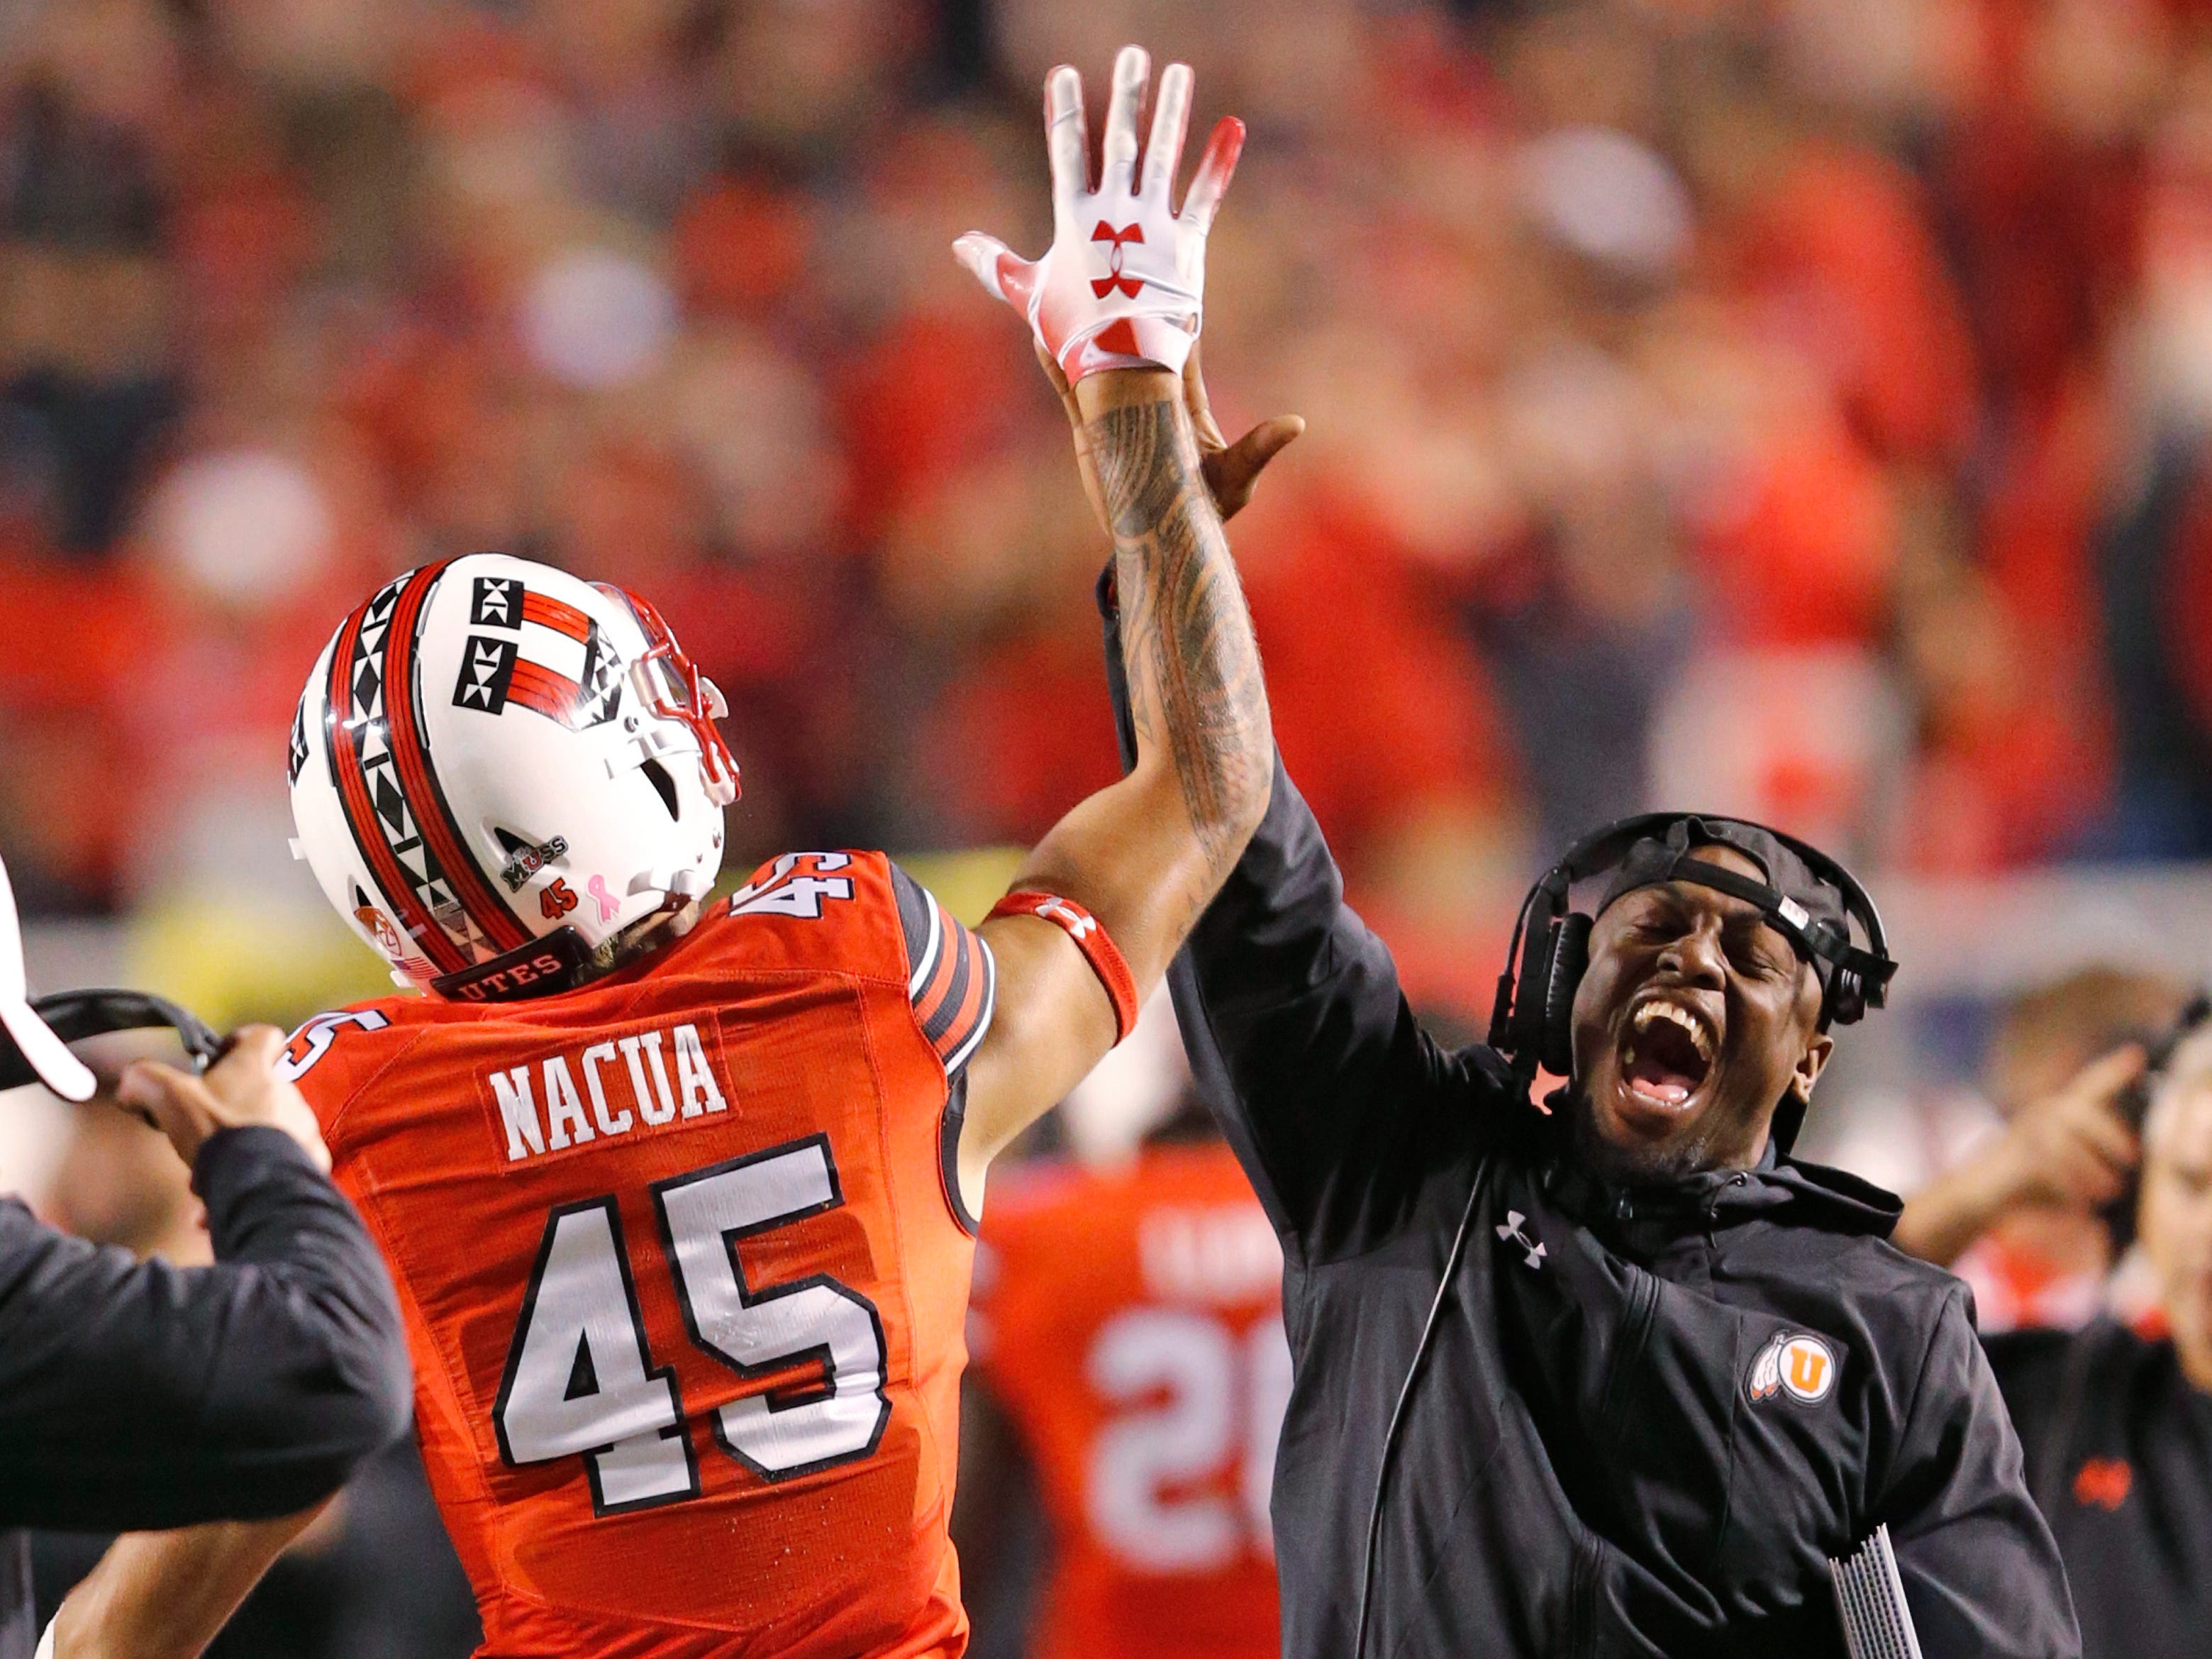 Utah wide receiver Samson Nacua (45) receives a high-five after scoring against Arizona during the first half of an NCAA college football game Friday, Oct. 12, 2018, in Salt Lake City.